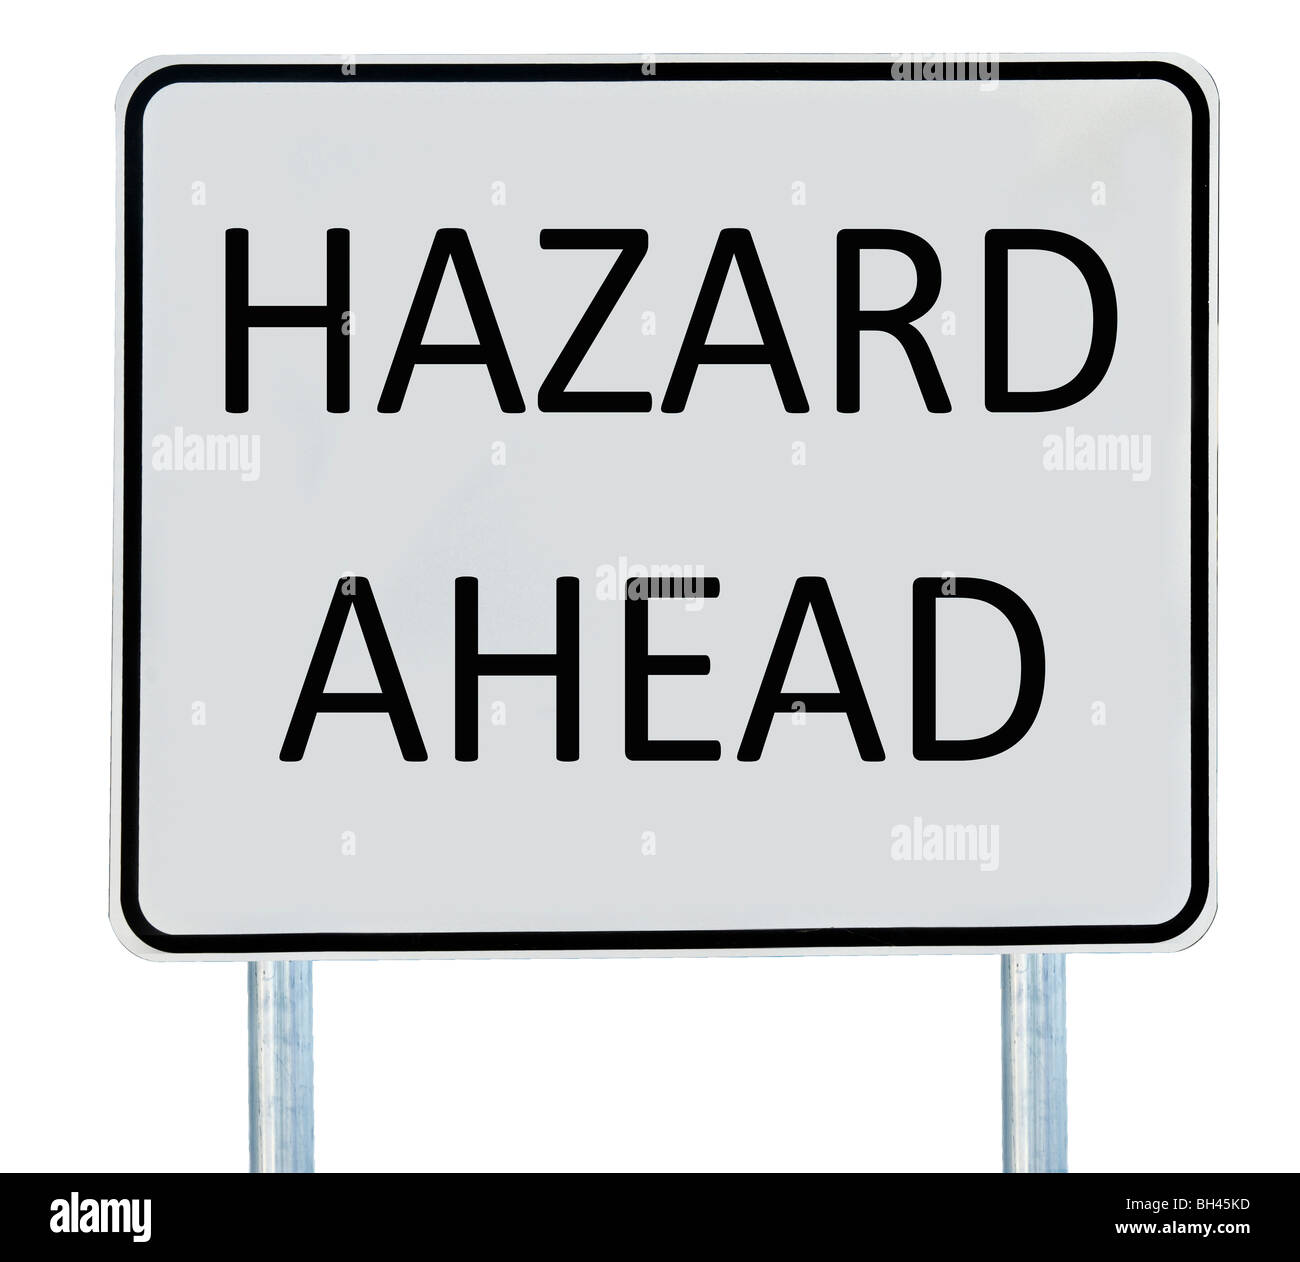 A 'Hazard Ahead' road sign isolated on white. - Stock Image